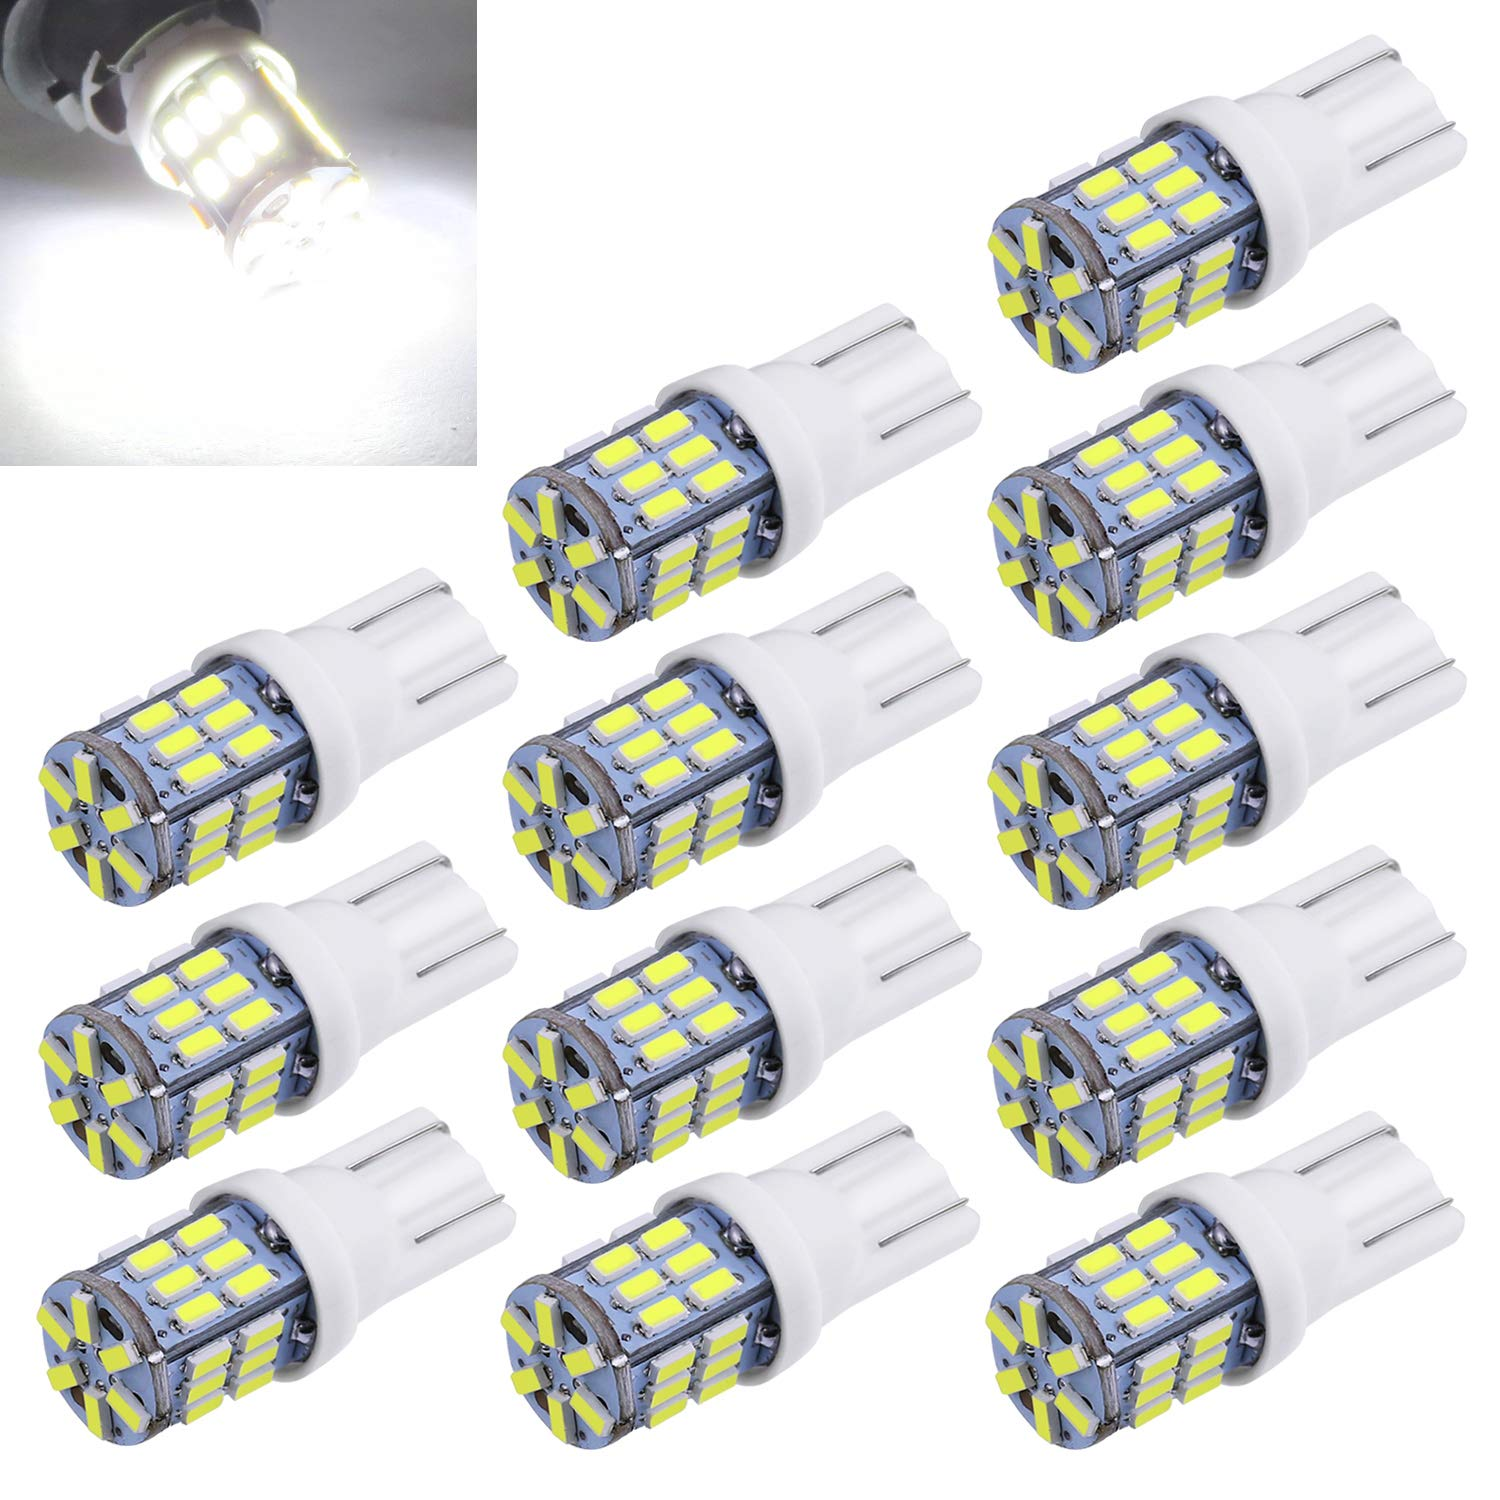 SMD LED Light 12V Car Interior Lighting For Map Dome Lamp Courtesy Trunk License Plate Dashboard Lights Aucan LED 50-Pack Blue Replacement 194 T10 168 2825 W5W 175 158 Bulb 5050 5